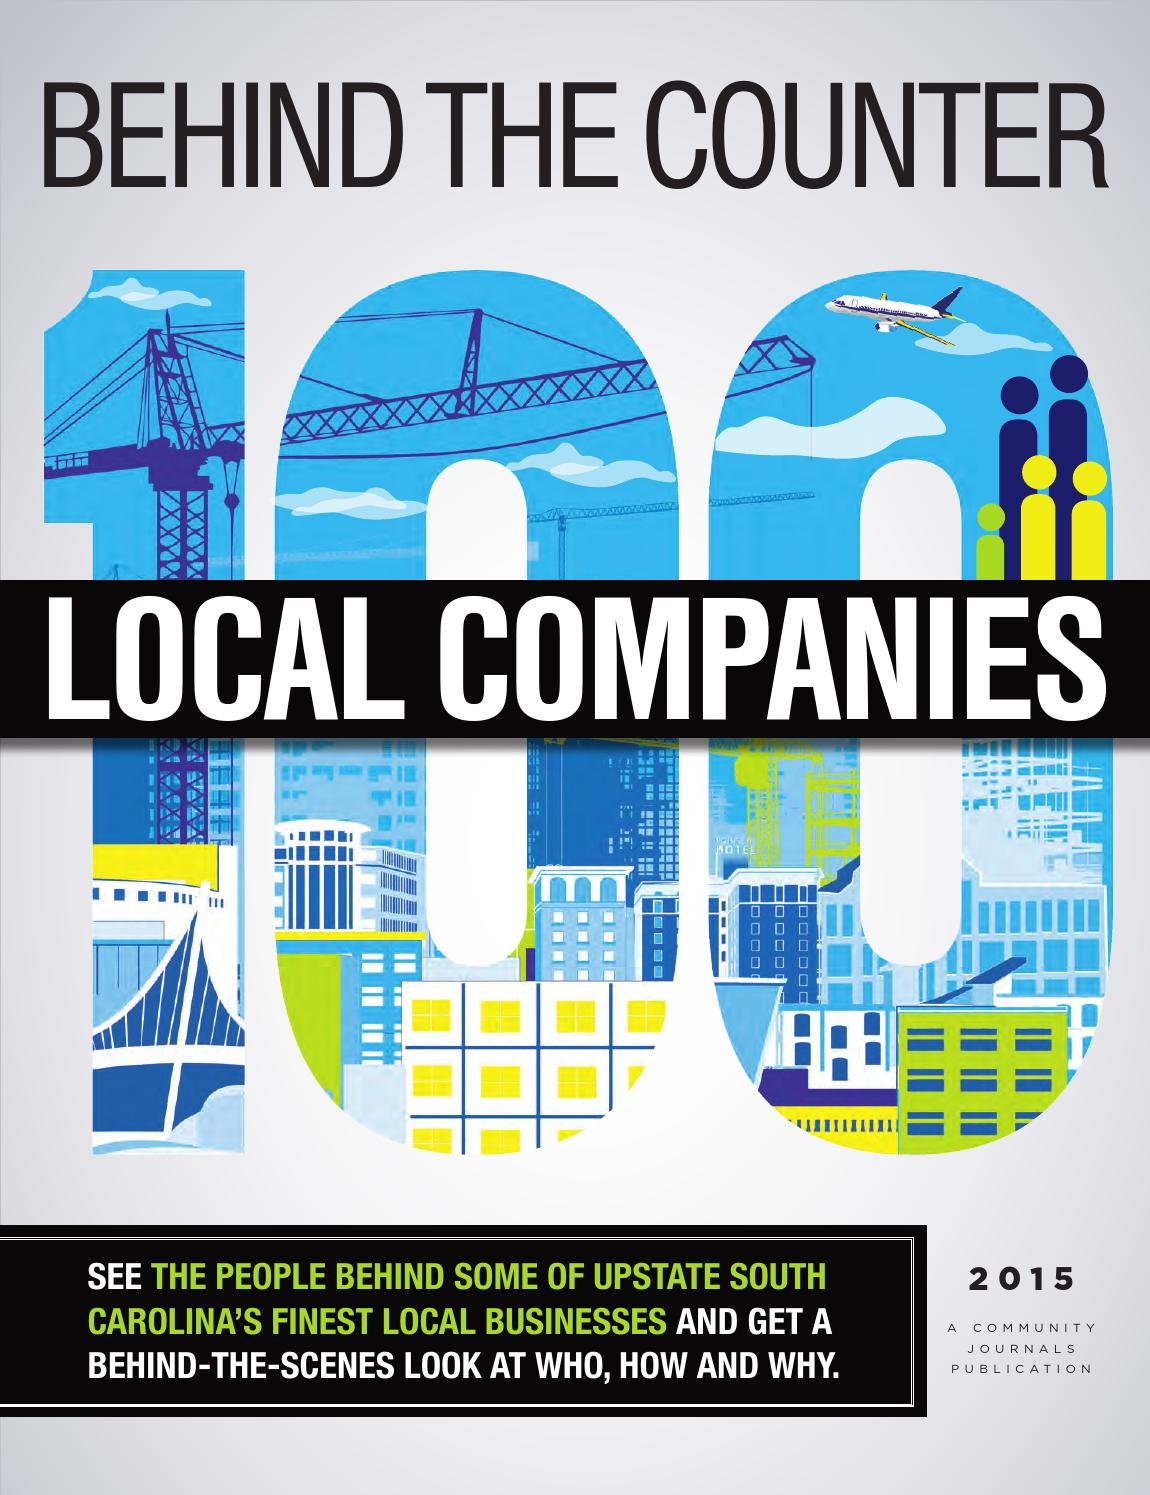 Behind The Counter 2015 by Community Journals - issuu